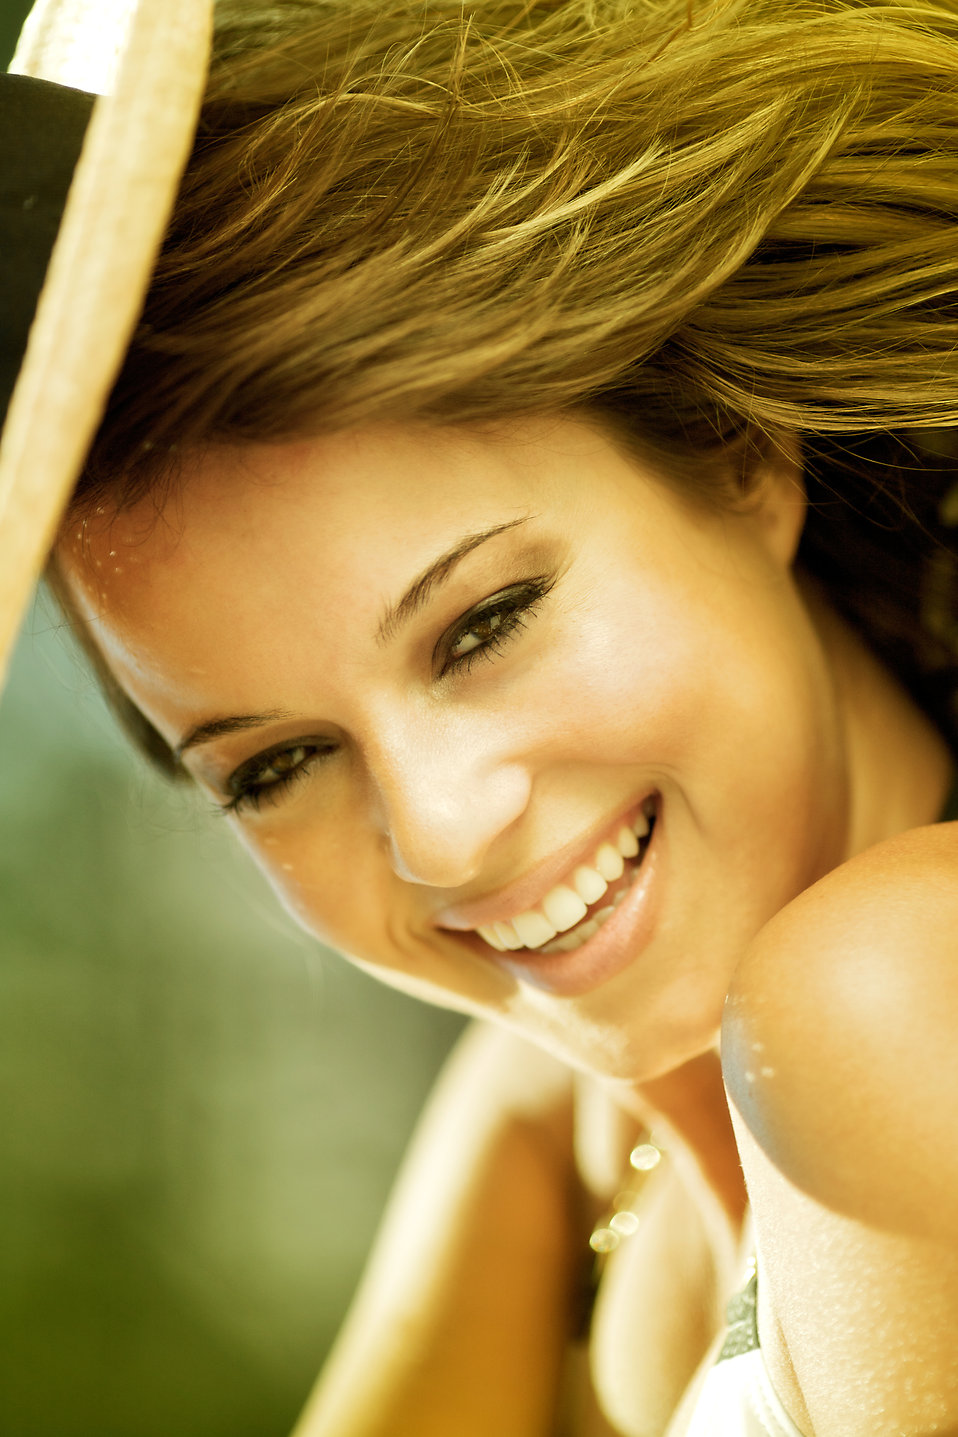 Close-up portrait of a beautiful woman smiling.